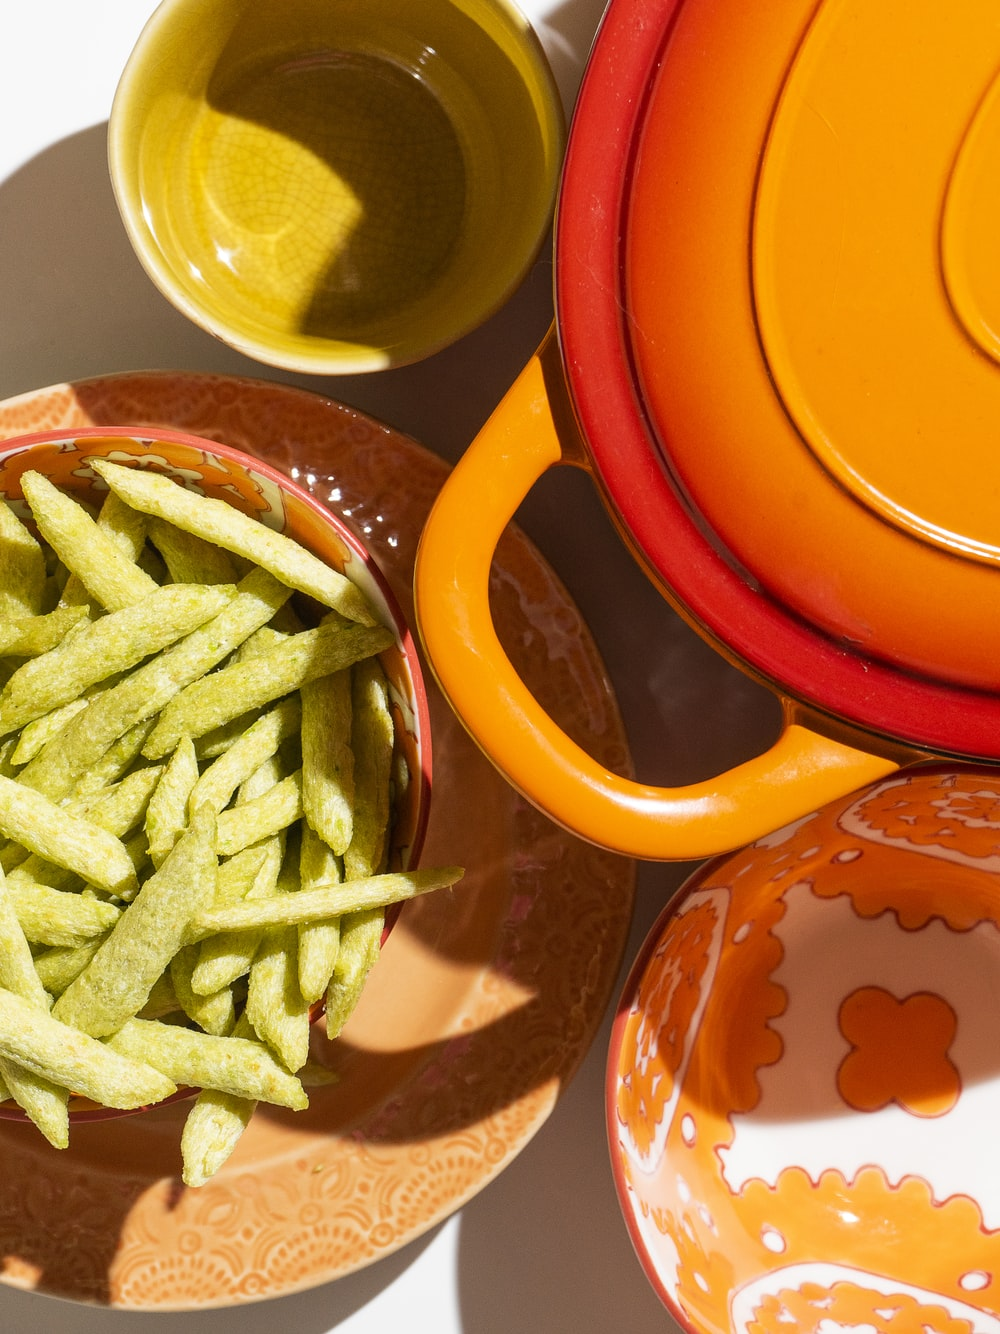 green vegetable on red ceramic plate